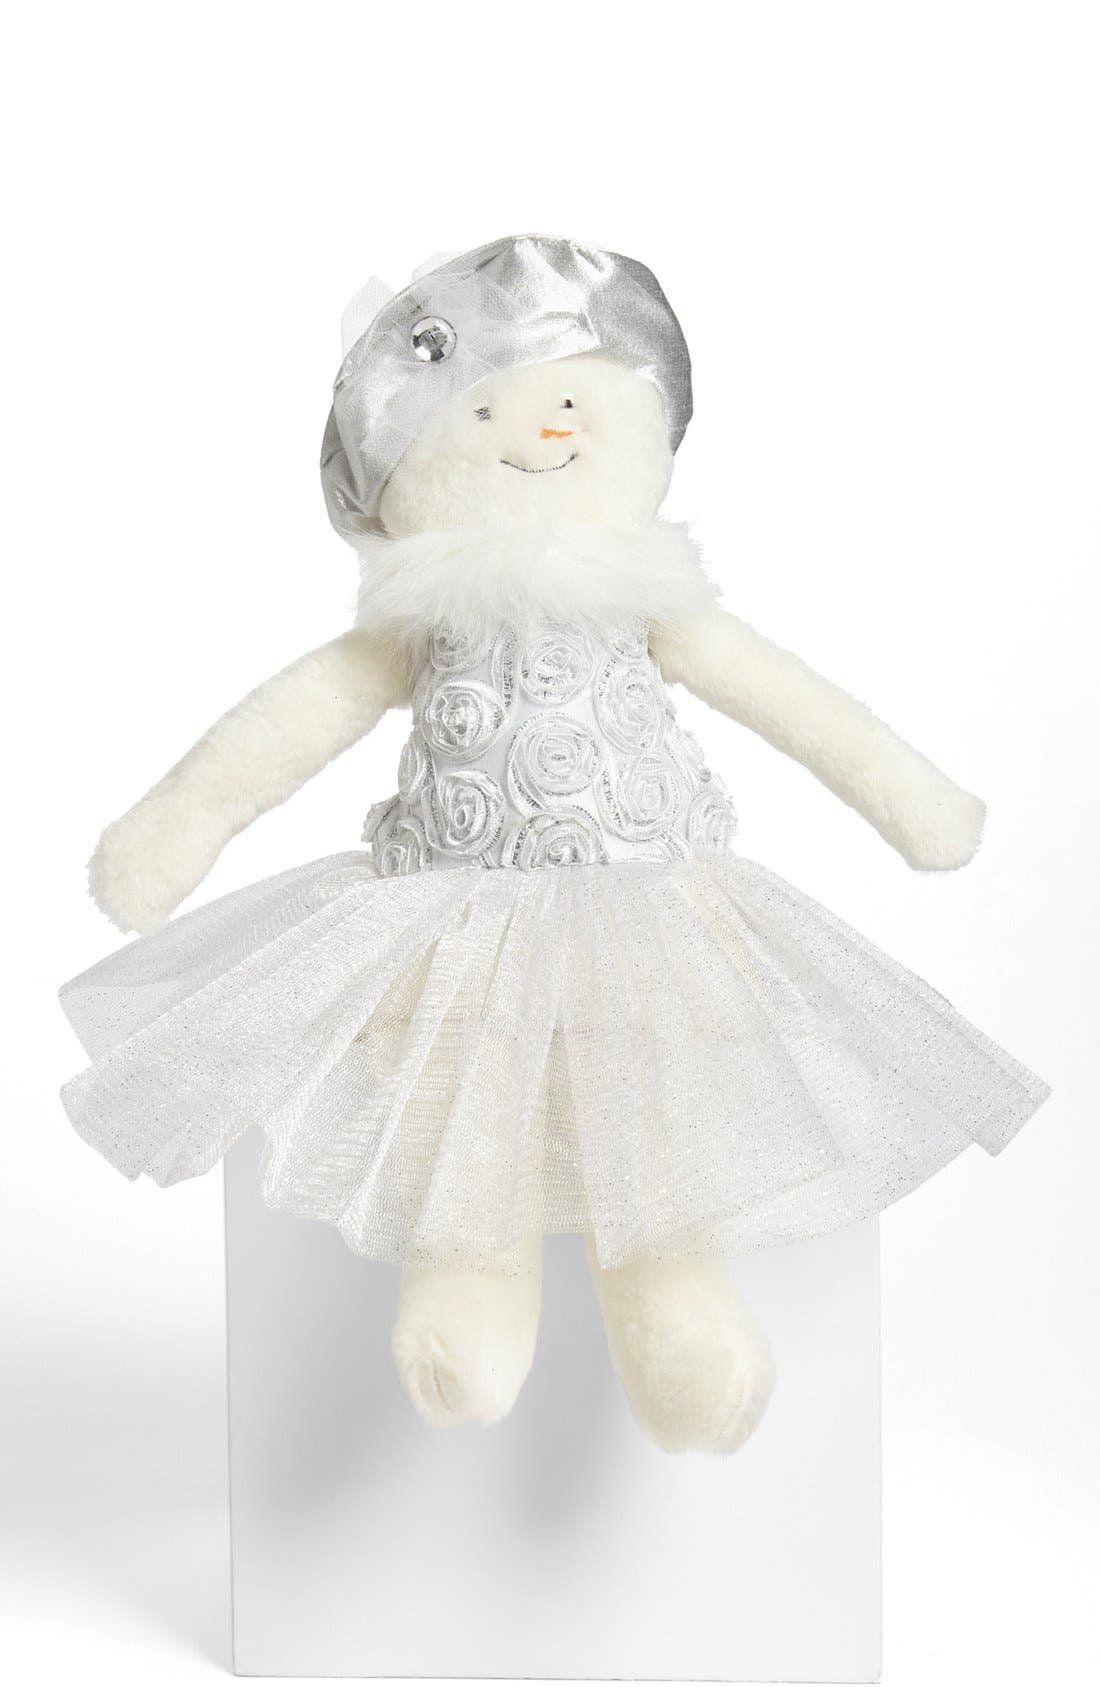 Main Image - Woof & Poof 'Party Snowgirl' Doll